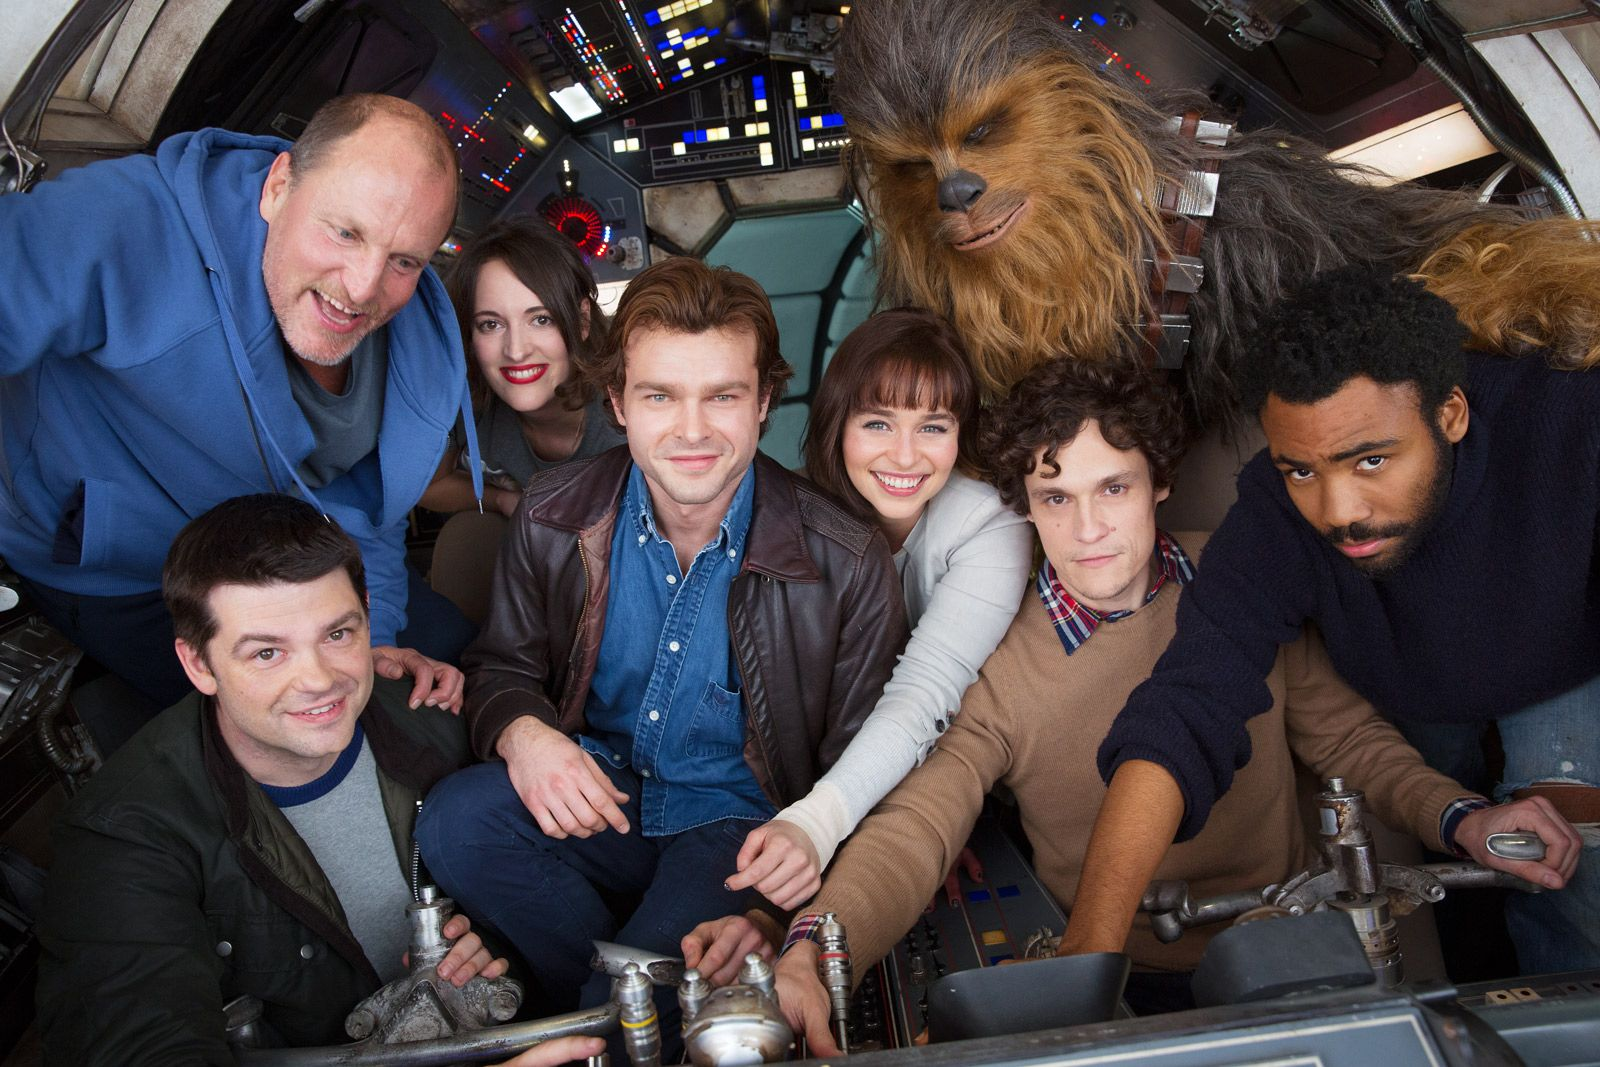 Disney boss talks 'Star Wars,' details of Han Solo film